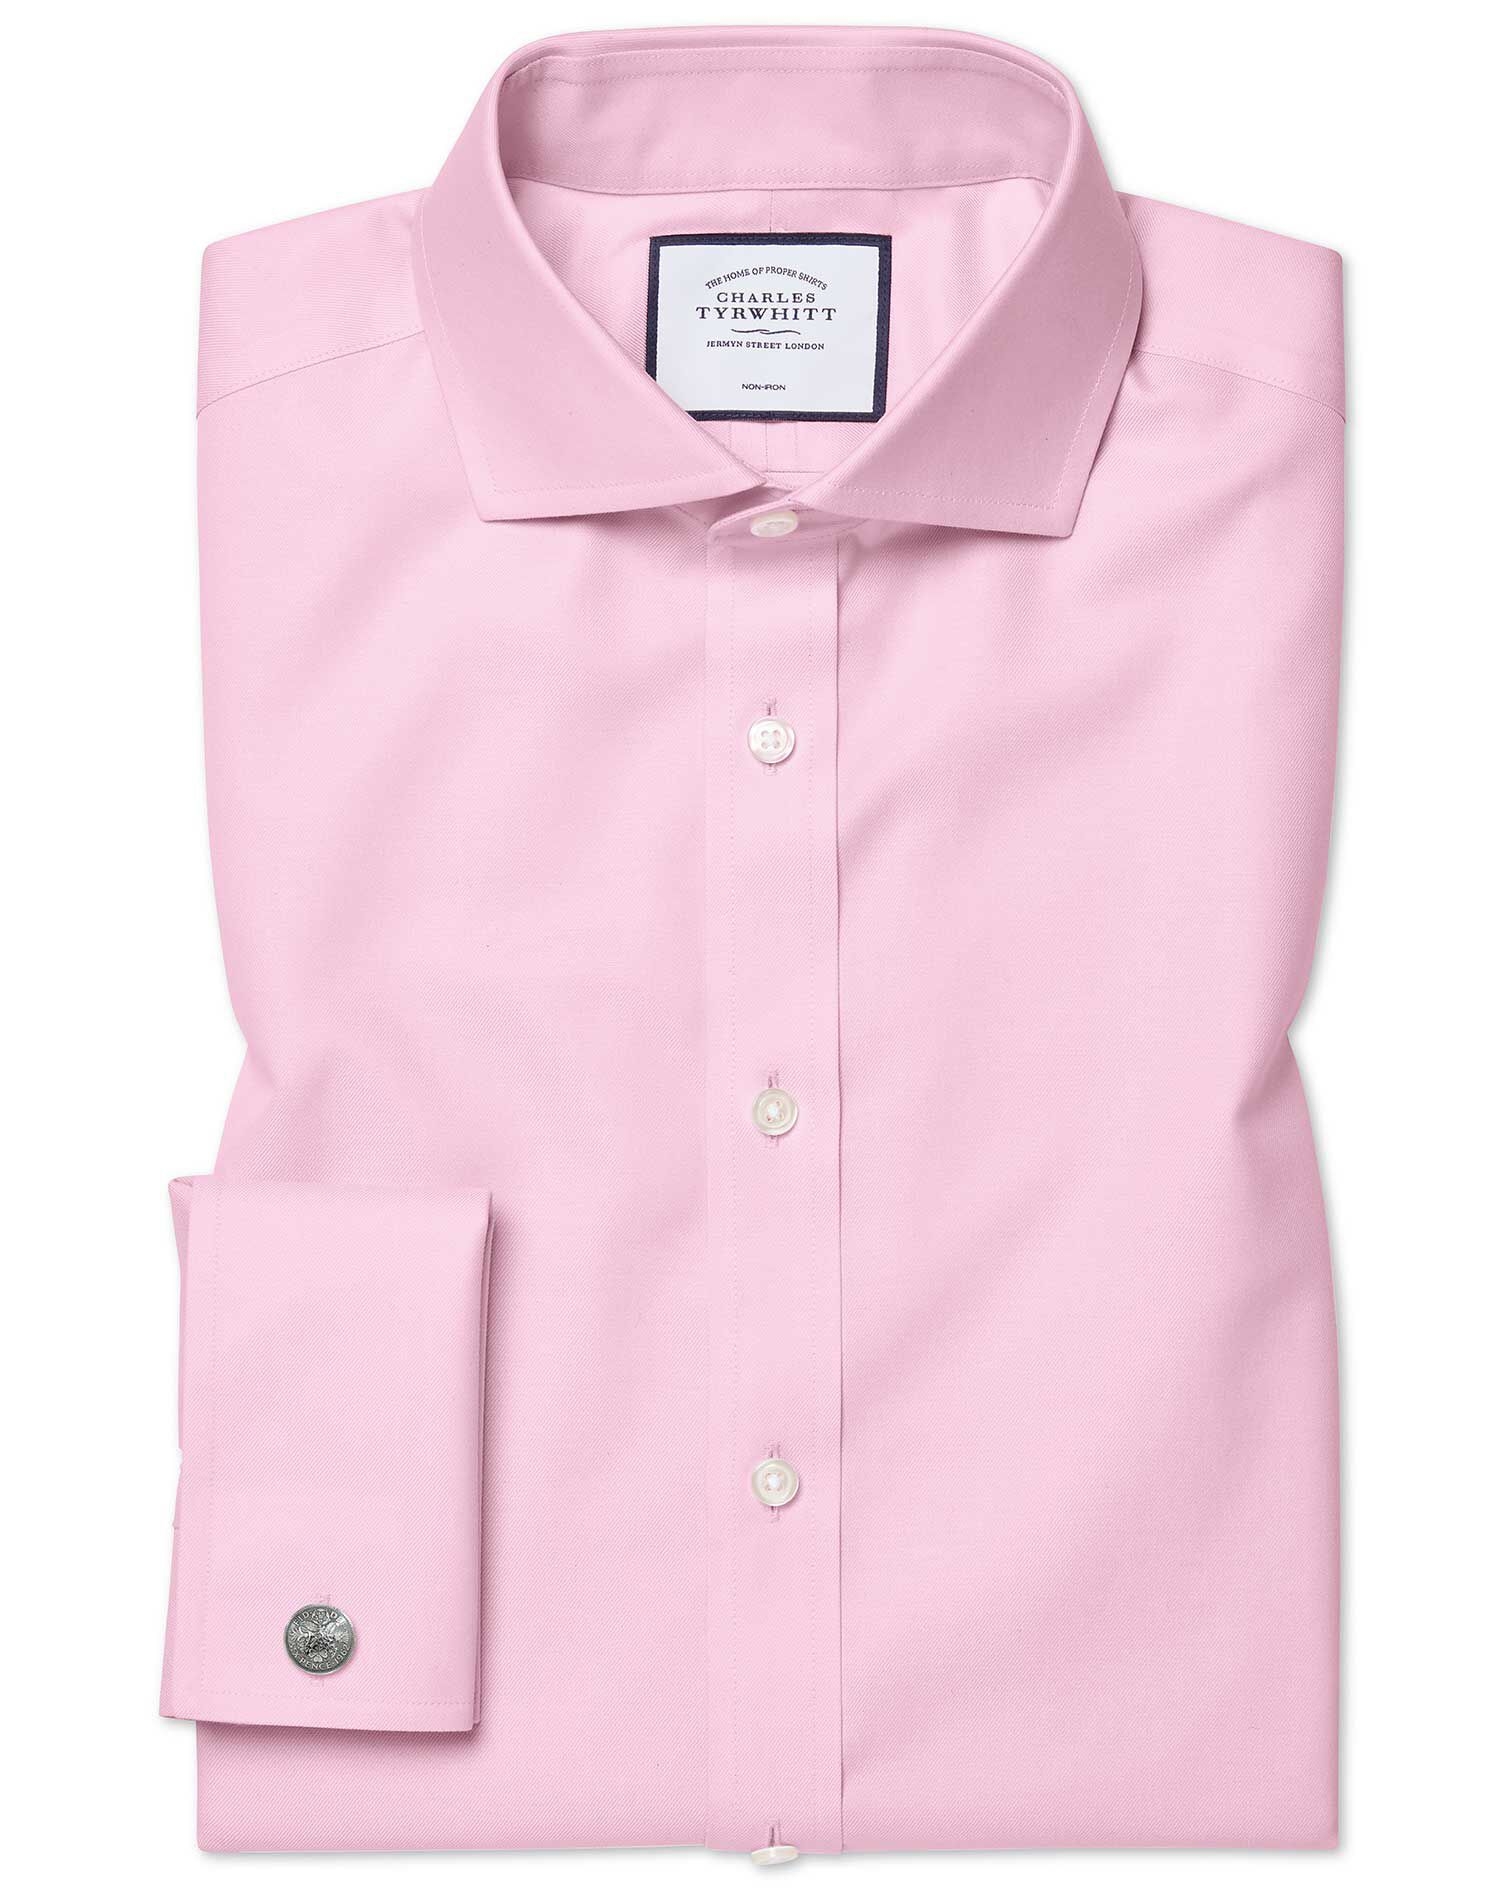 Extra Slim Fit Cutaway Non-Iron Twill Pink Cotton Formal Shirt Single Cuff Size 16.5/33 by Charles T